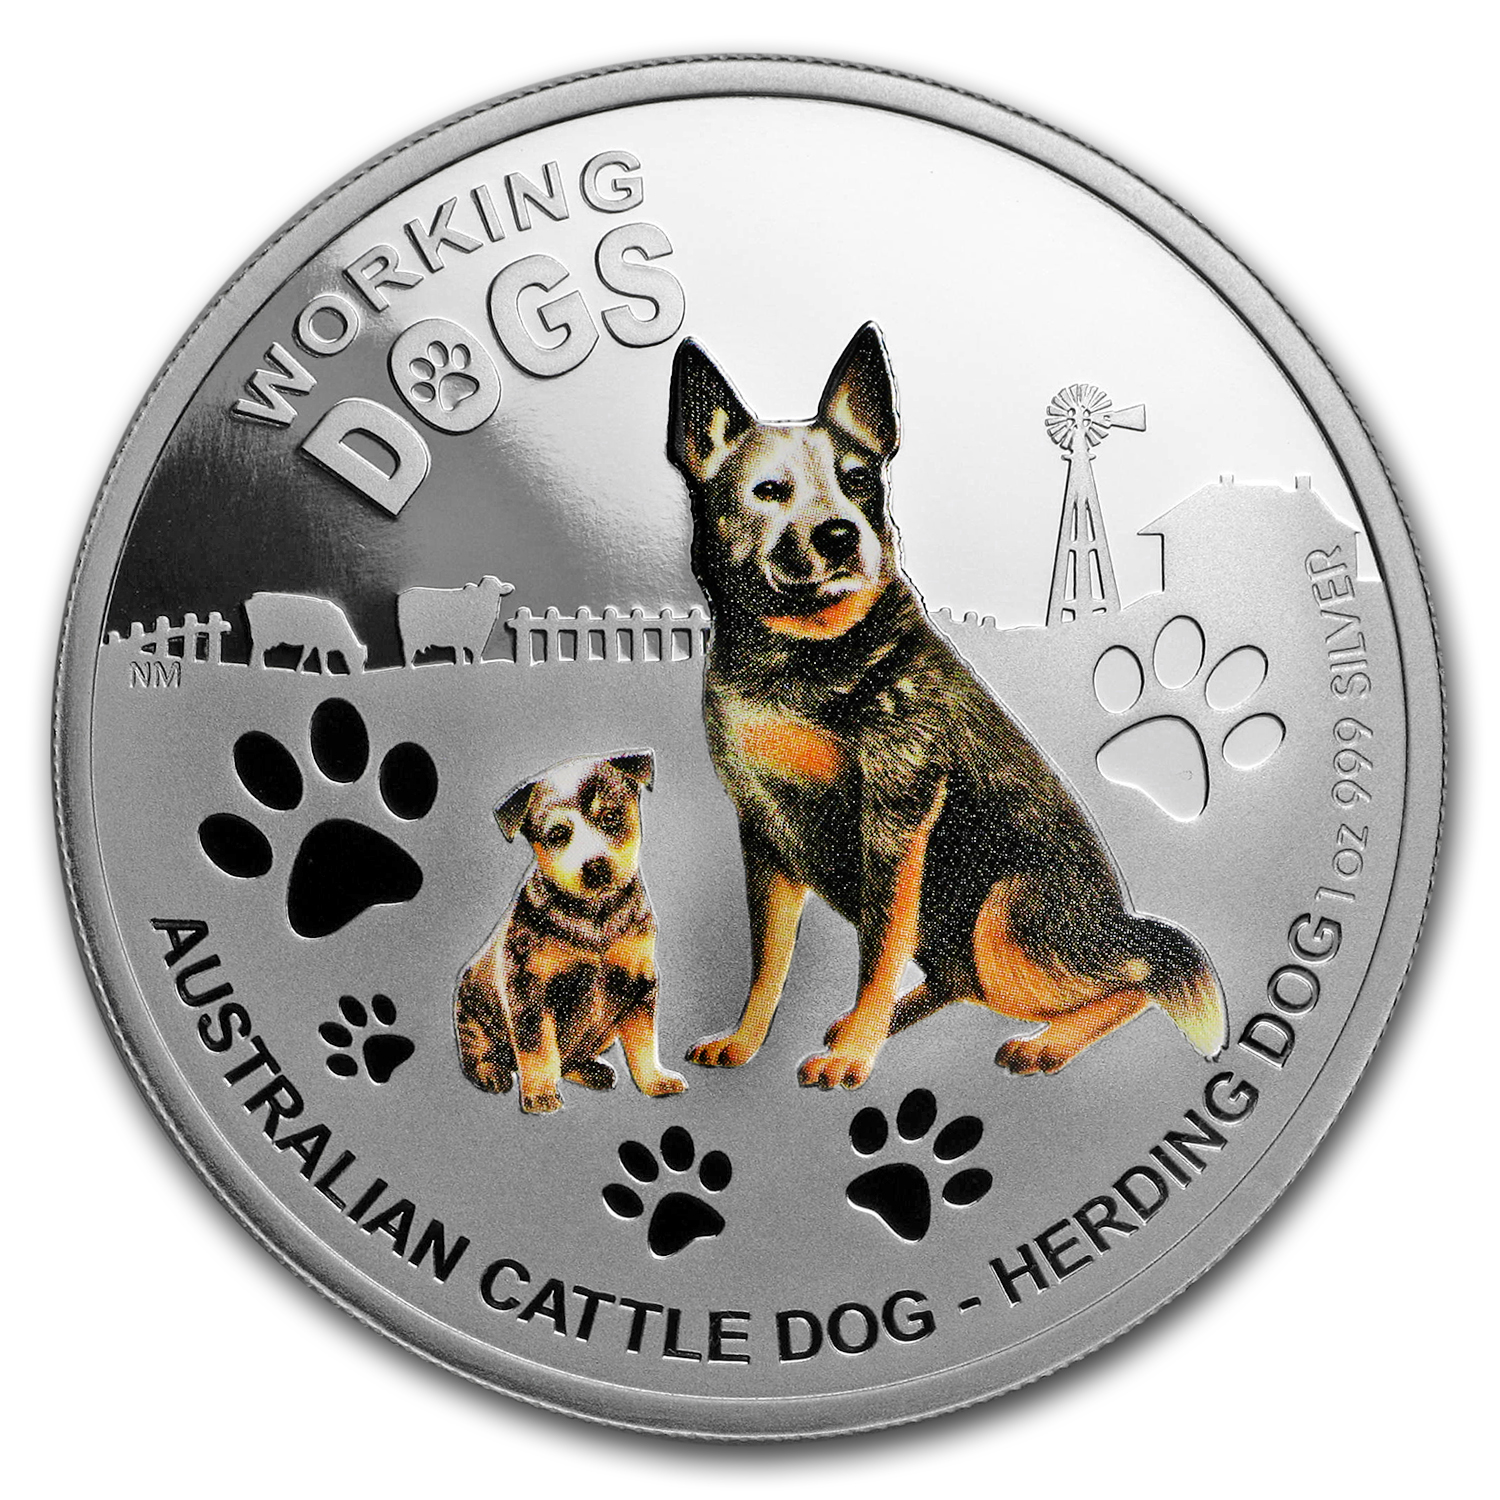 2011 Australia 1 oz Silver Working Dog Proof (Cattle Dog)